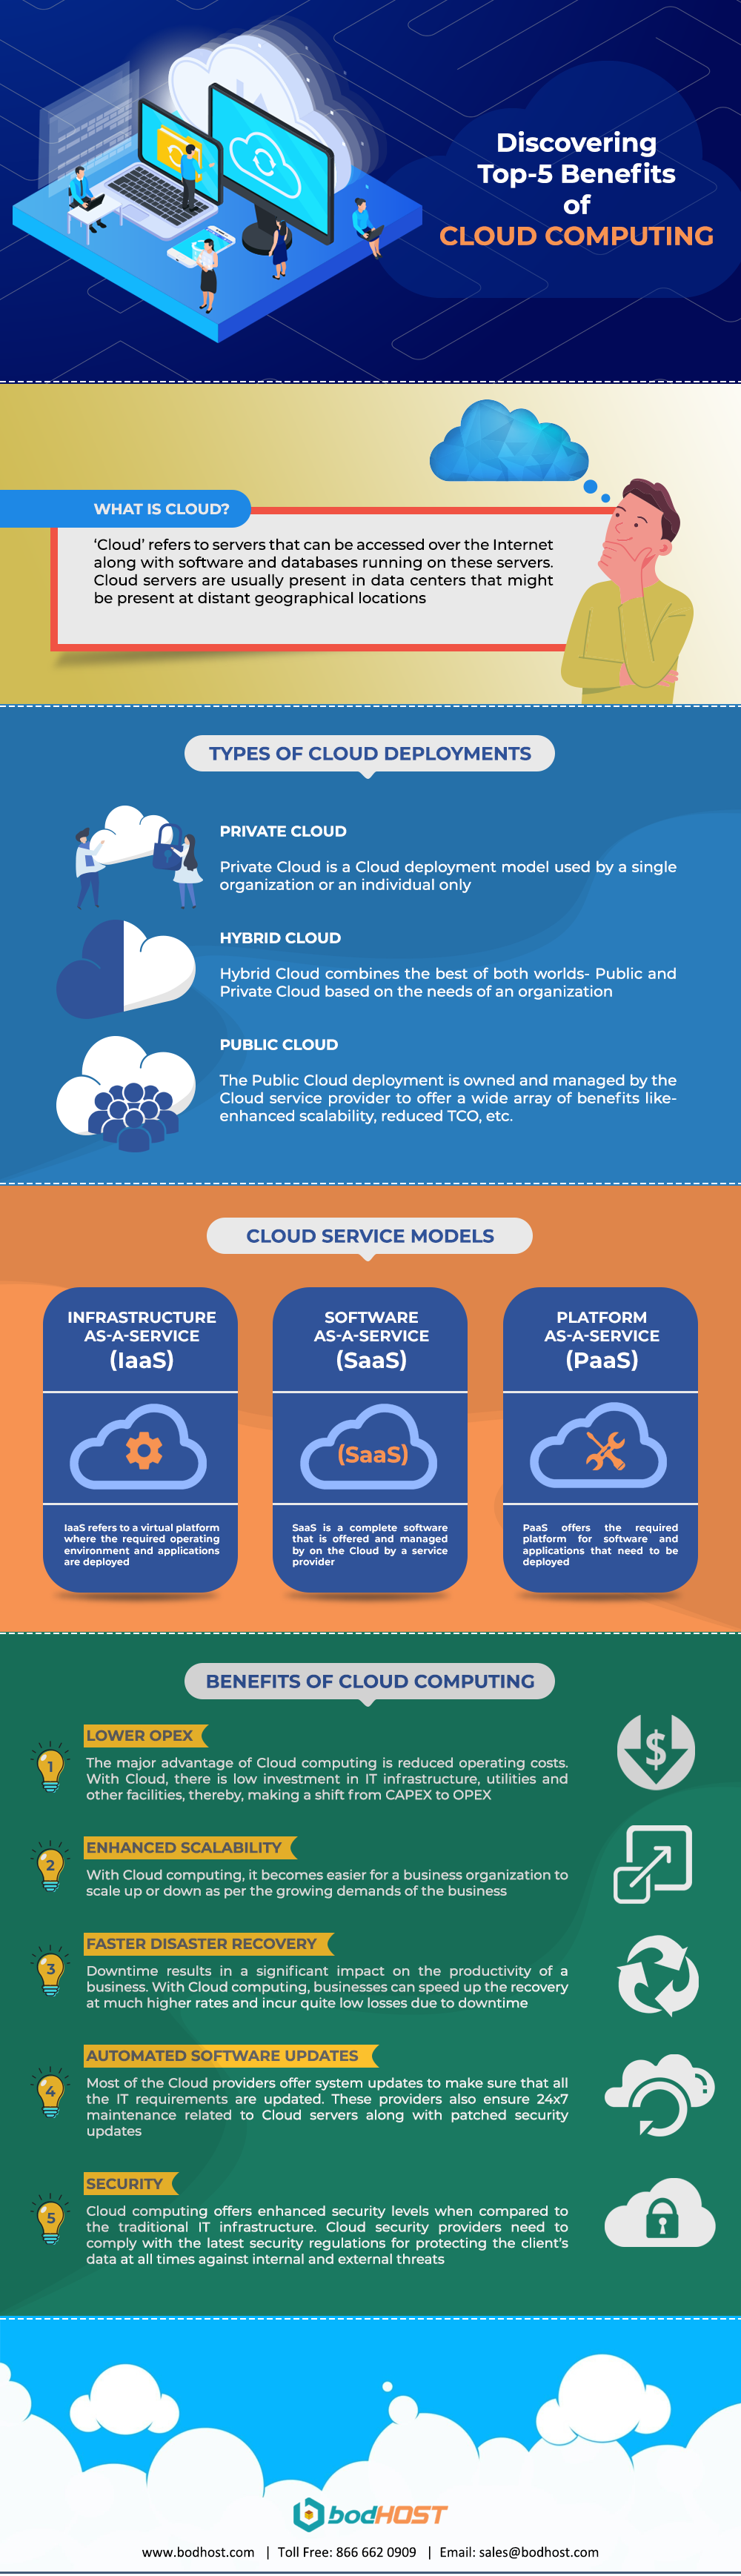 Discovering Top 5 Benefits of Cloud Computing - Web Hosting Infographics